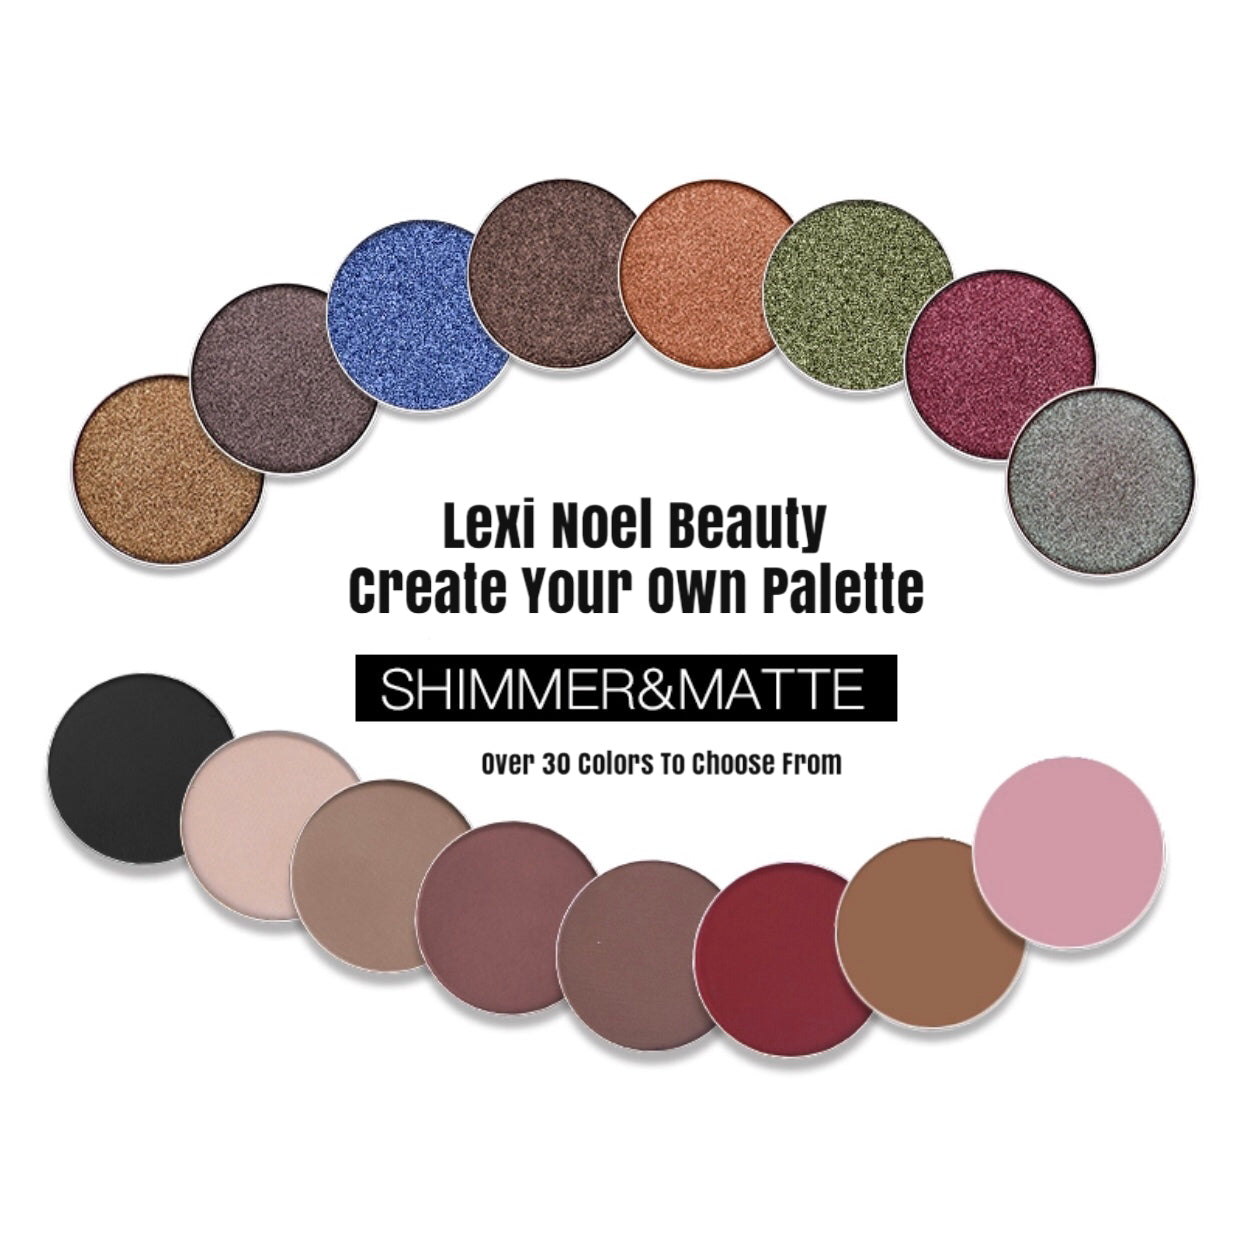 Why You Should Create Your Own Eyeshadow Palettes